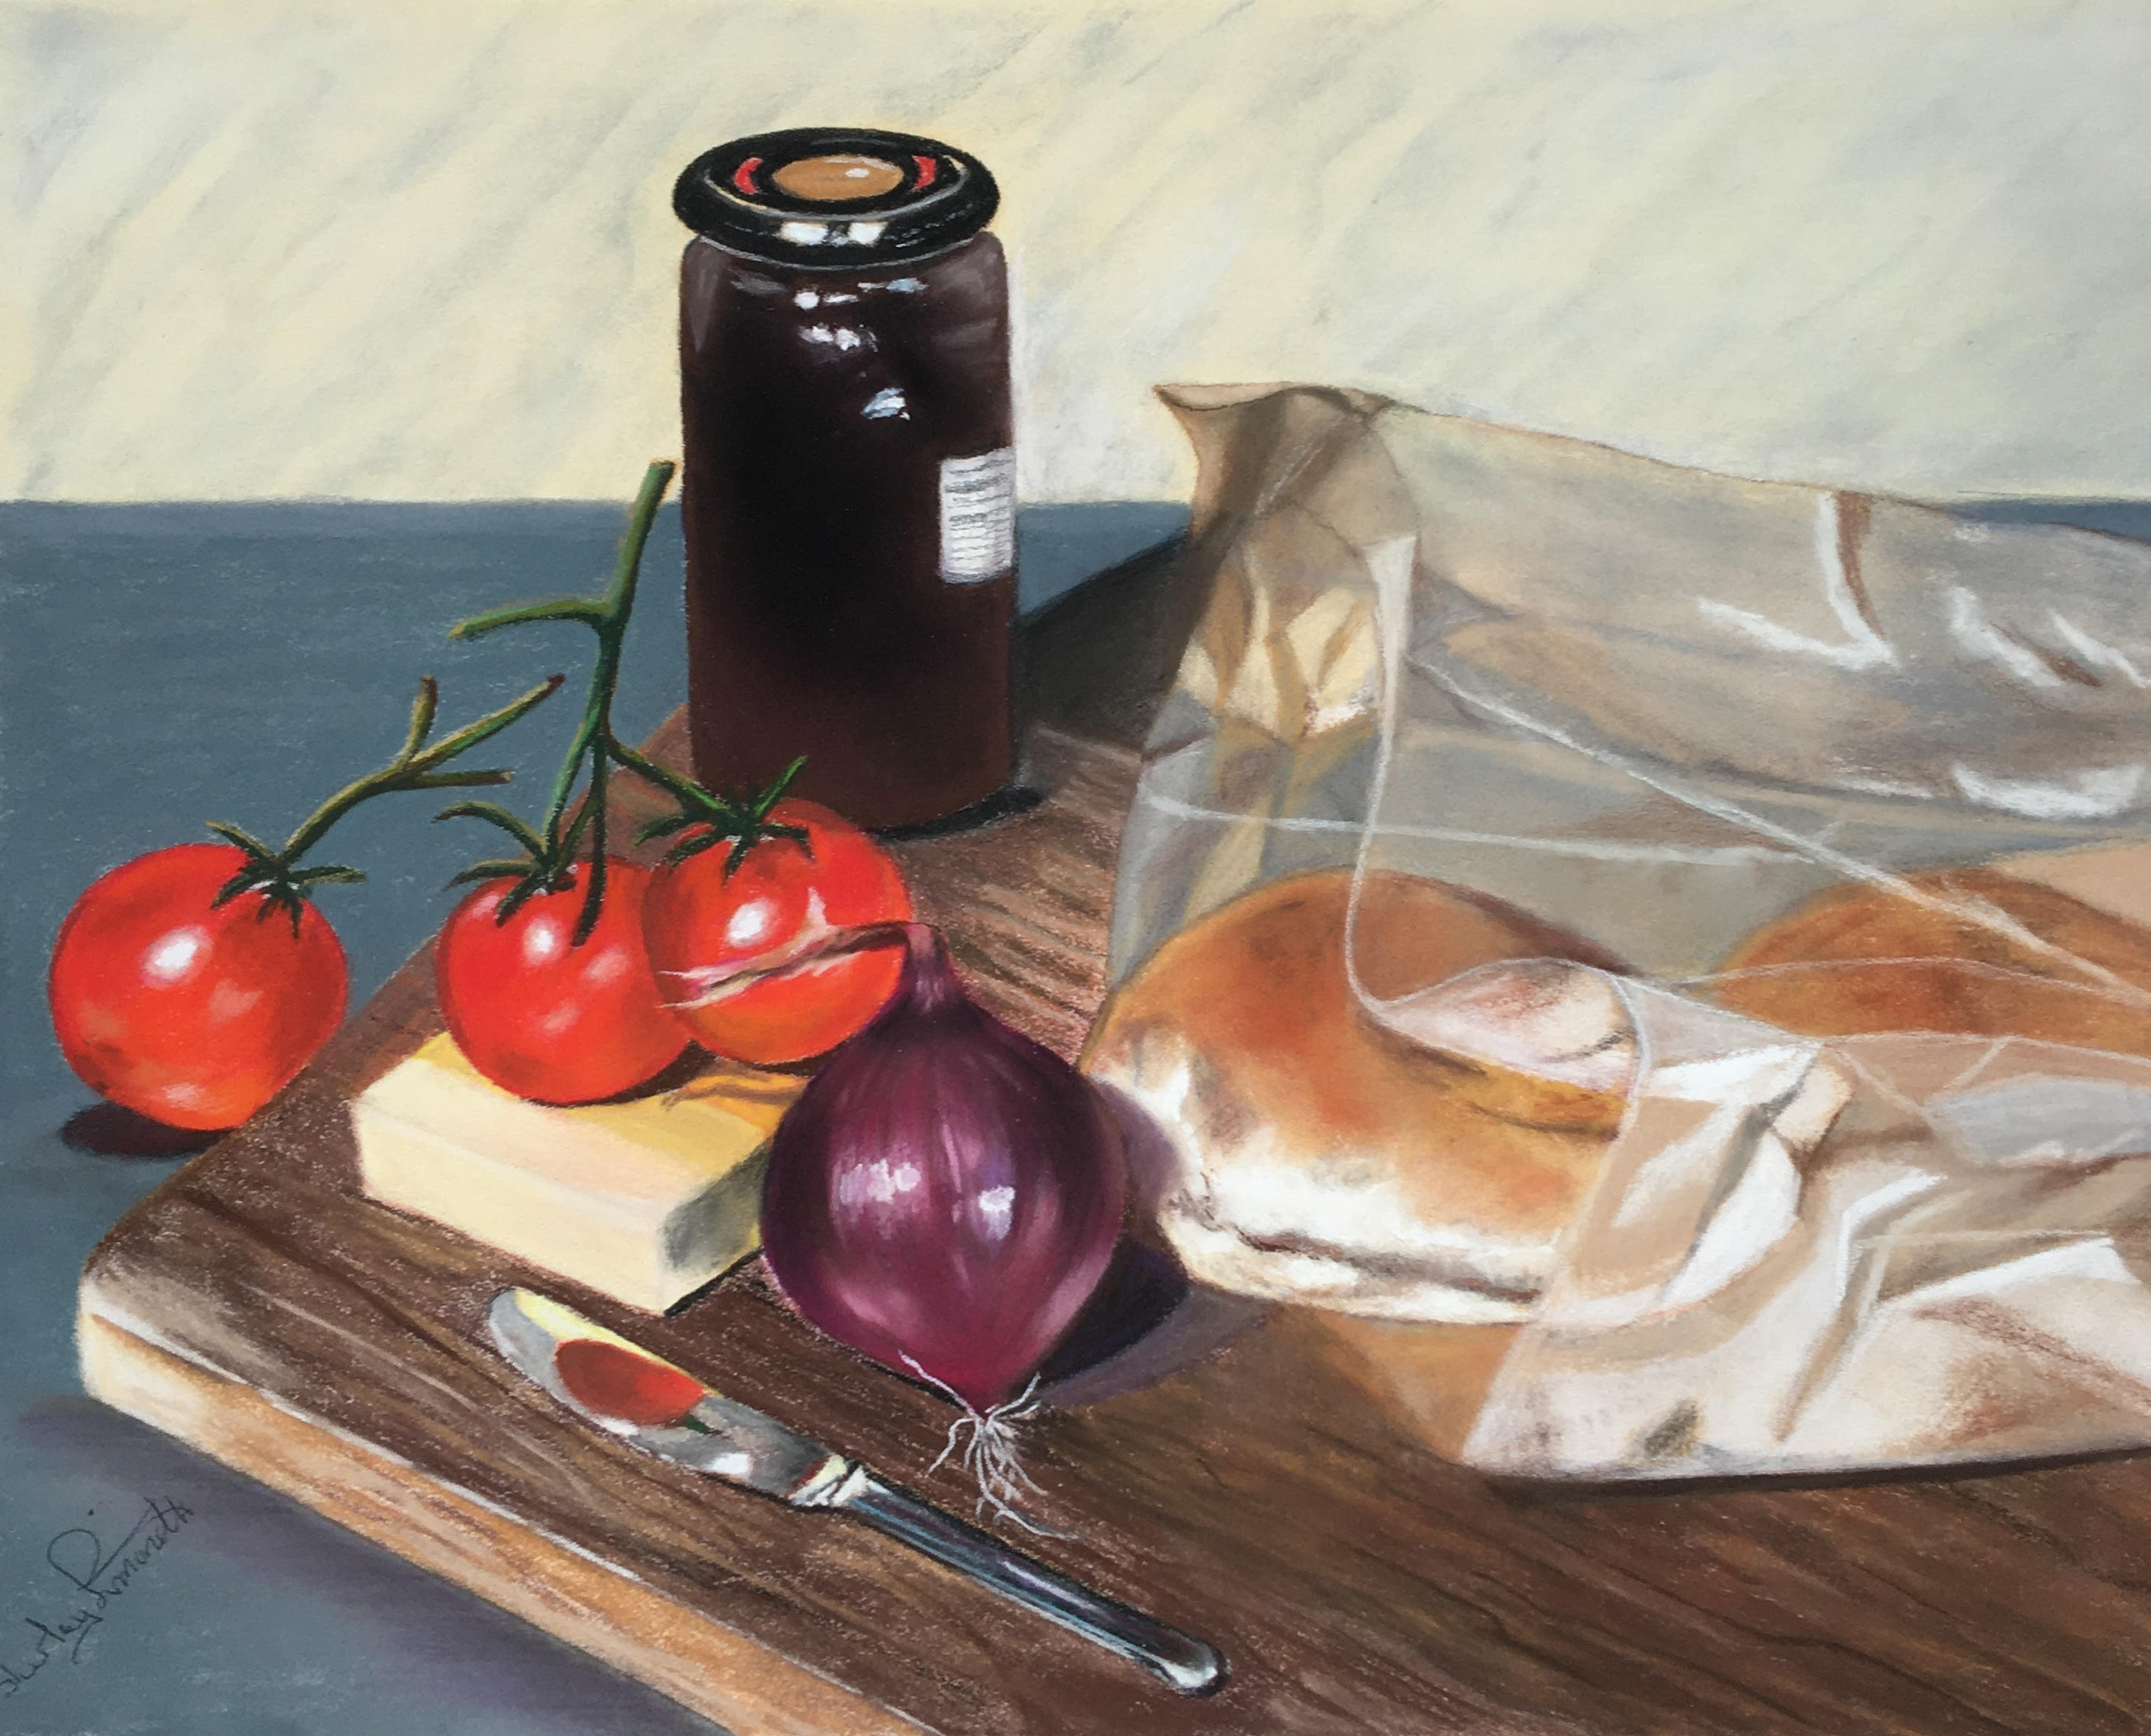 ploughman's lunch shirley simonetti